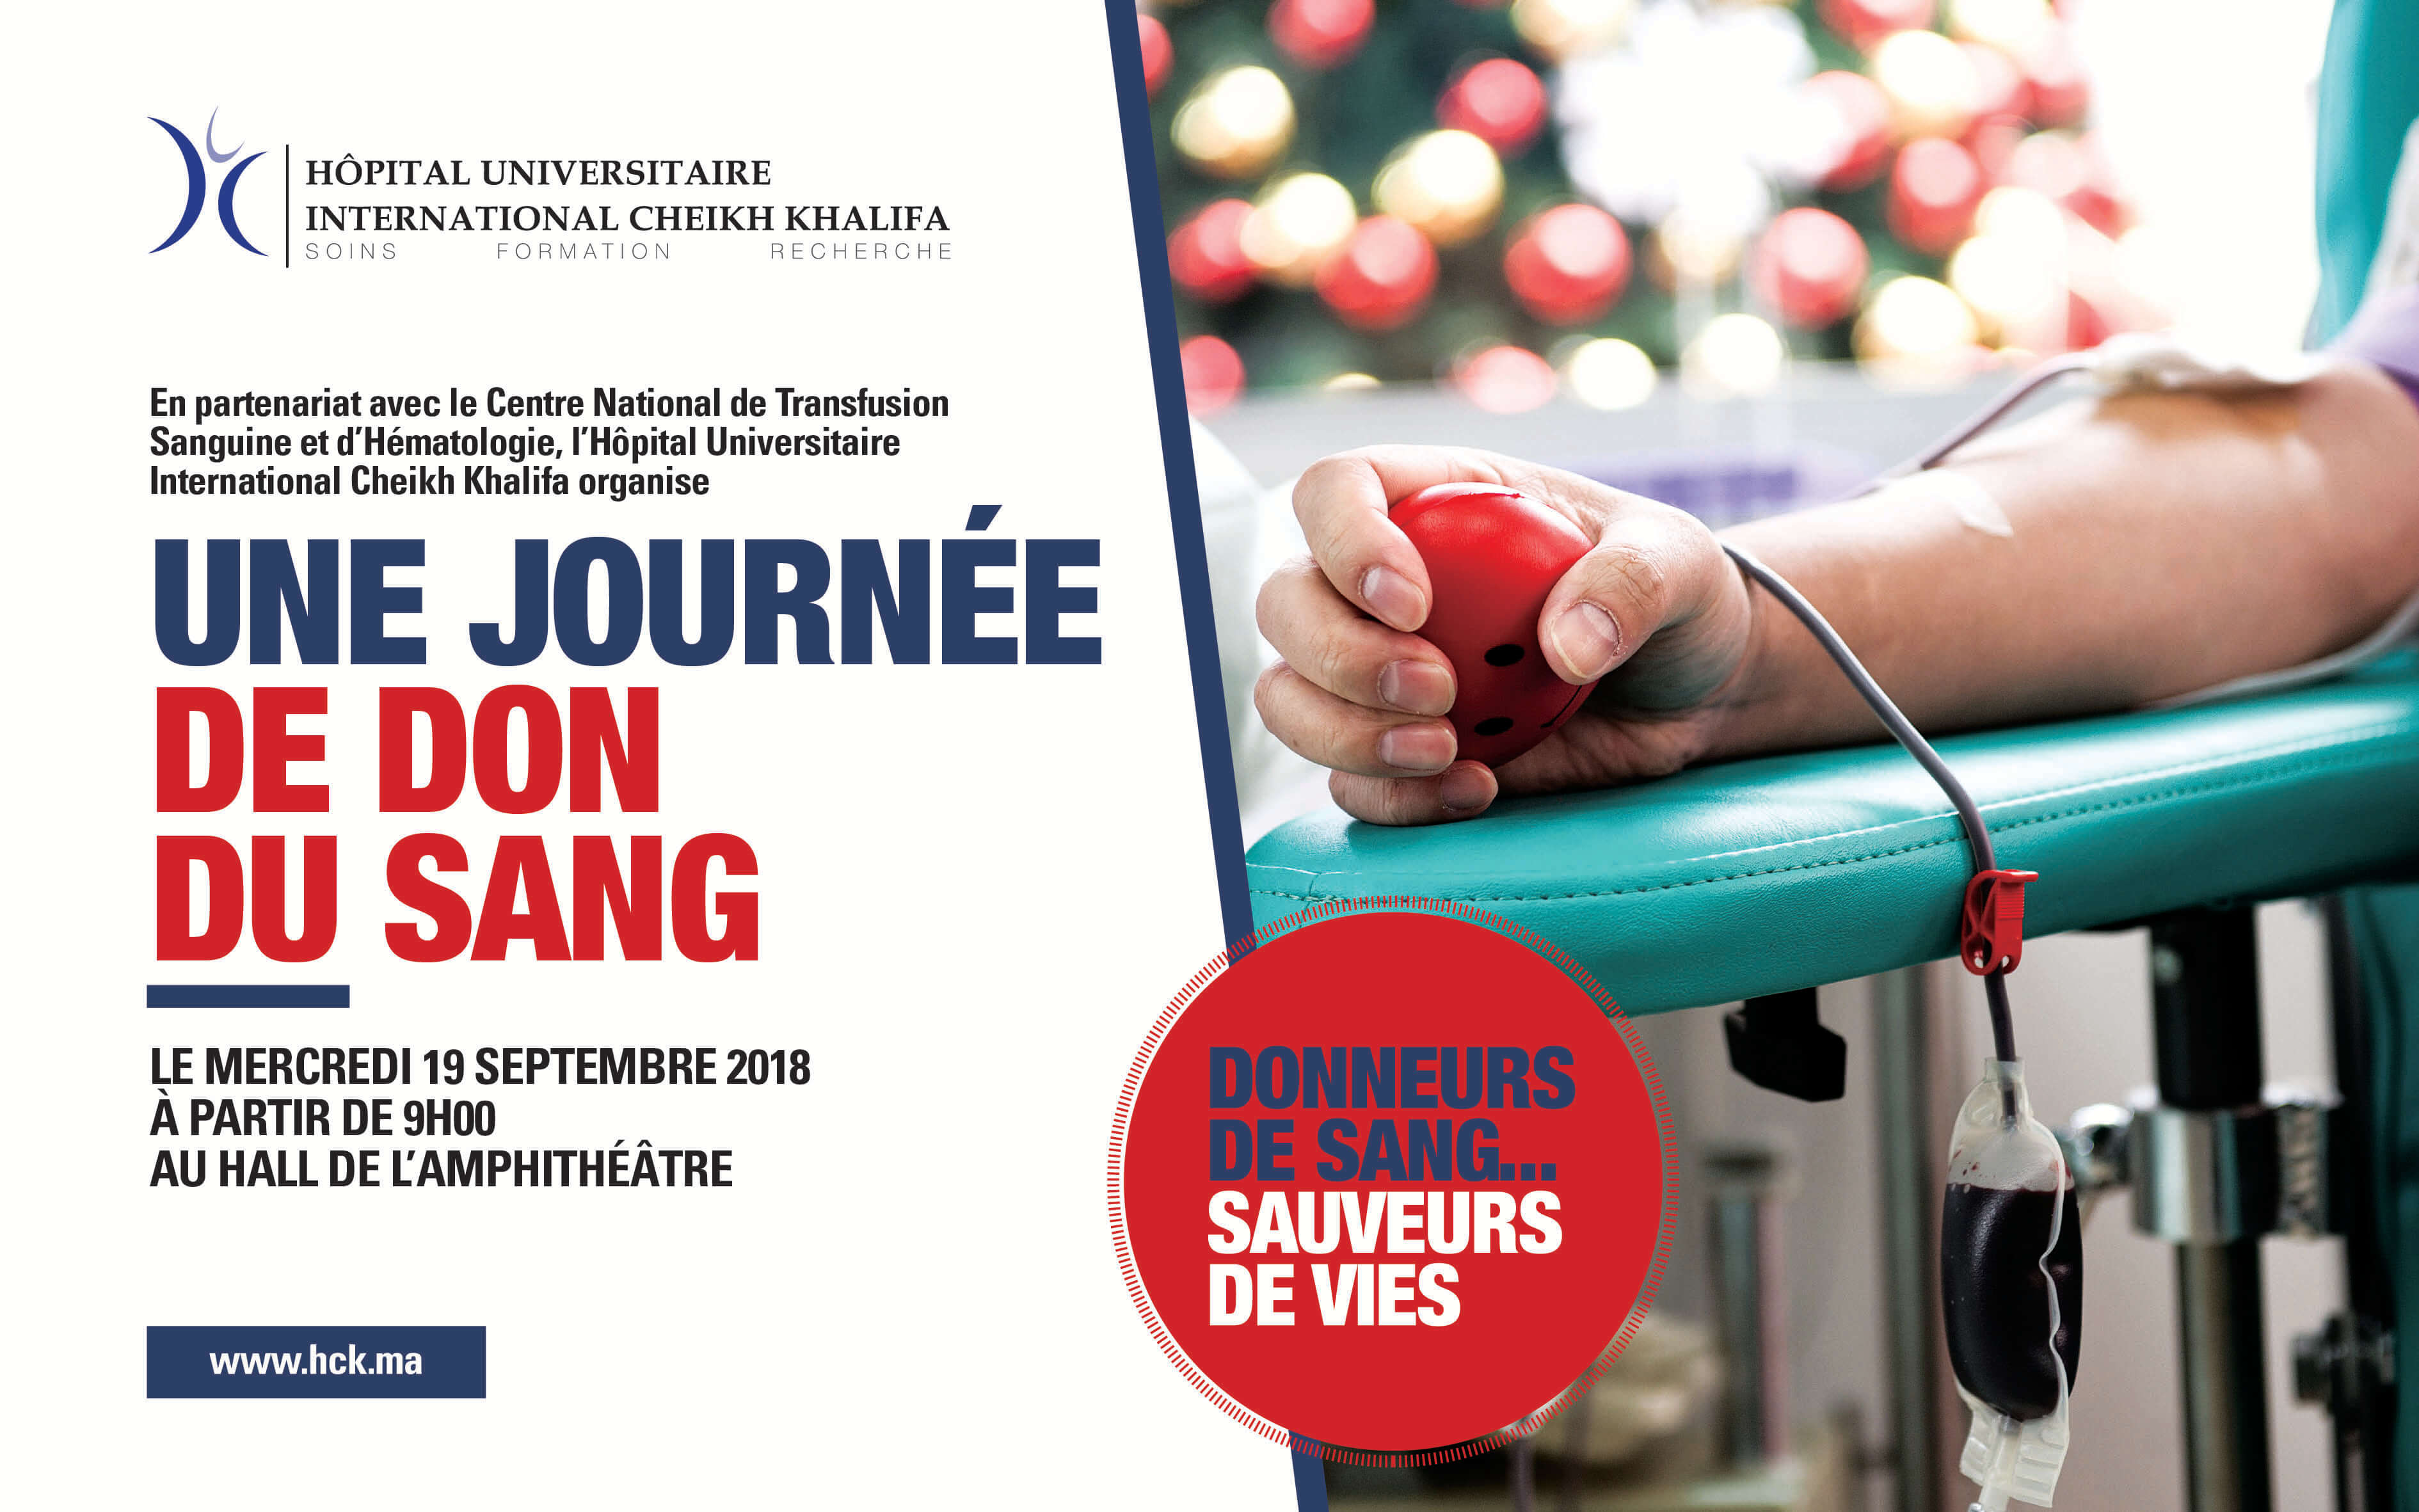 L'HÔPITAL UNIVERSITAIRE INTERNATIONAL CHEIKH KHALIFA LANCE UNE CAMPAGNE DE DON DU SANG